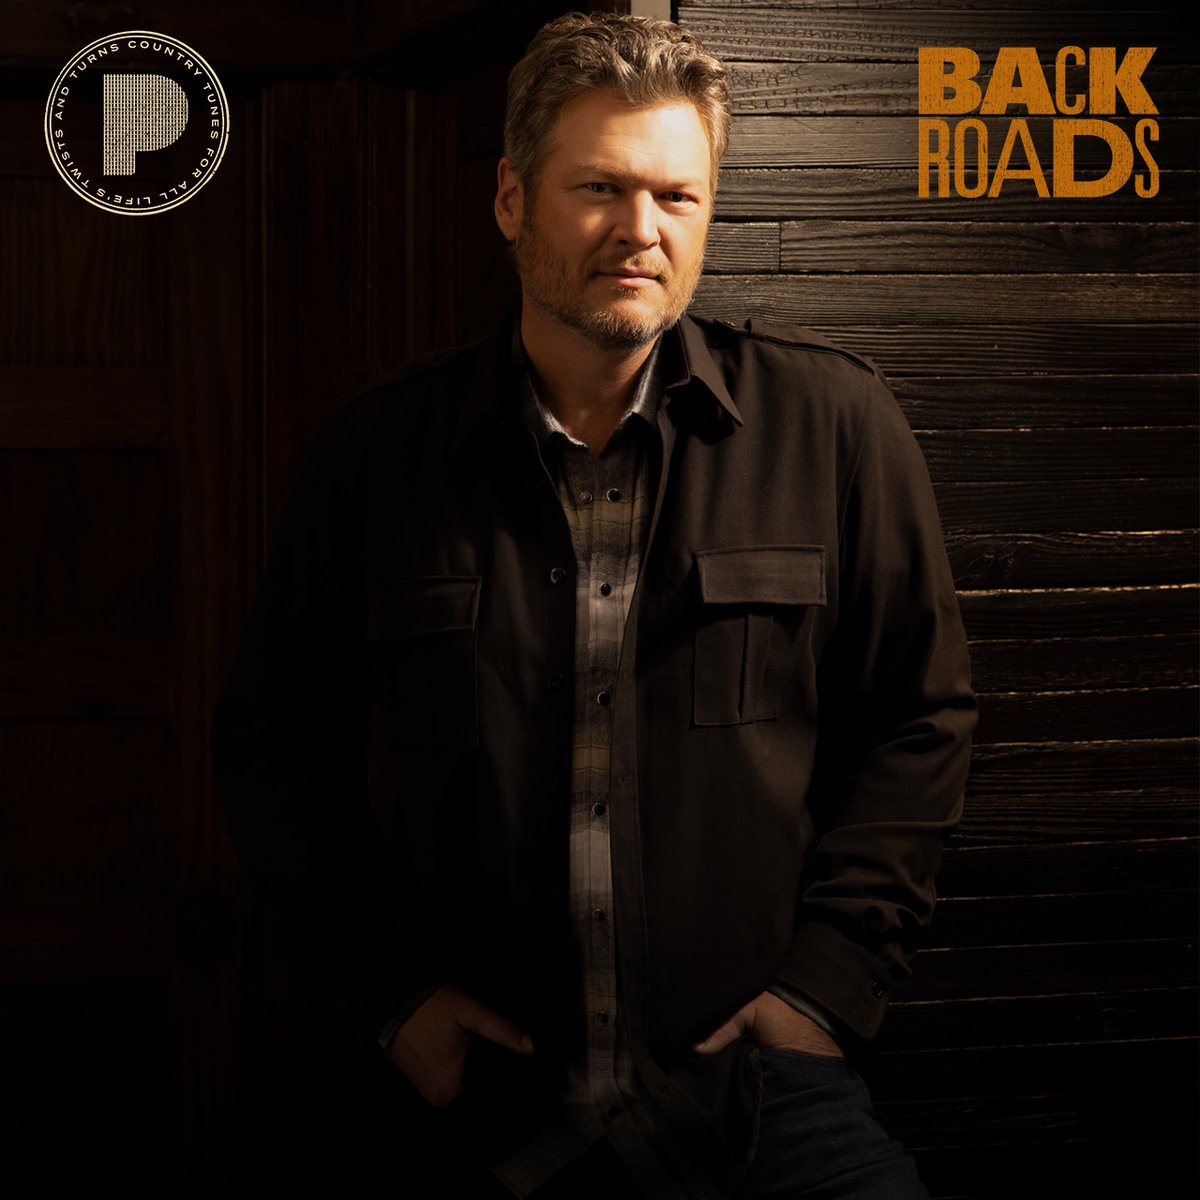 """Backroads are the best roads!!! Y'all listen to #BibleVerses on @pandoramusic's """"Backroads""""!!!!"""